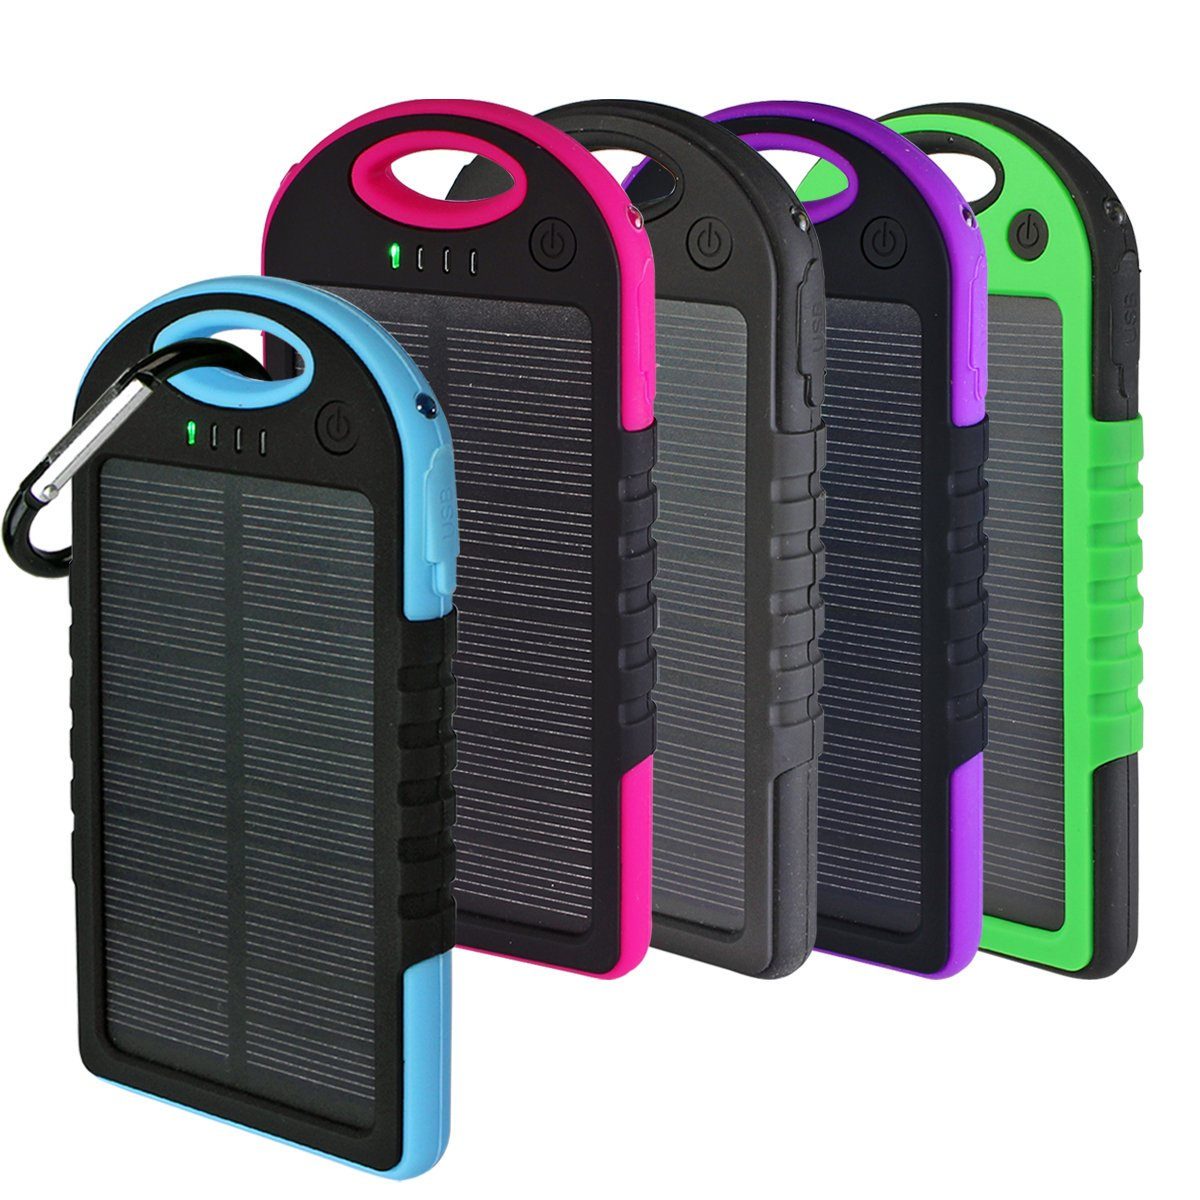 Solar Charger, Powercam, 10,000 mAh, Waterproof, Drop Resistant, Shockproof, for iPhones, iPads, Android, Samsung phones, GPS devices and Cameras (Black) by PowerCam